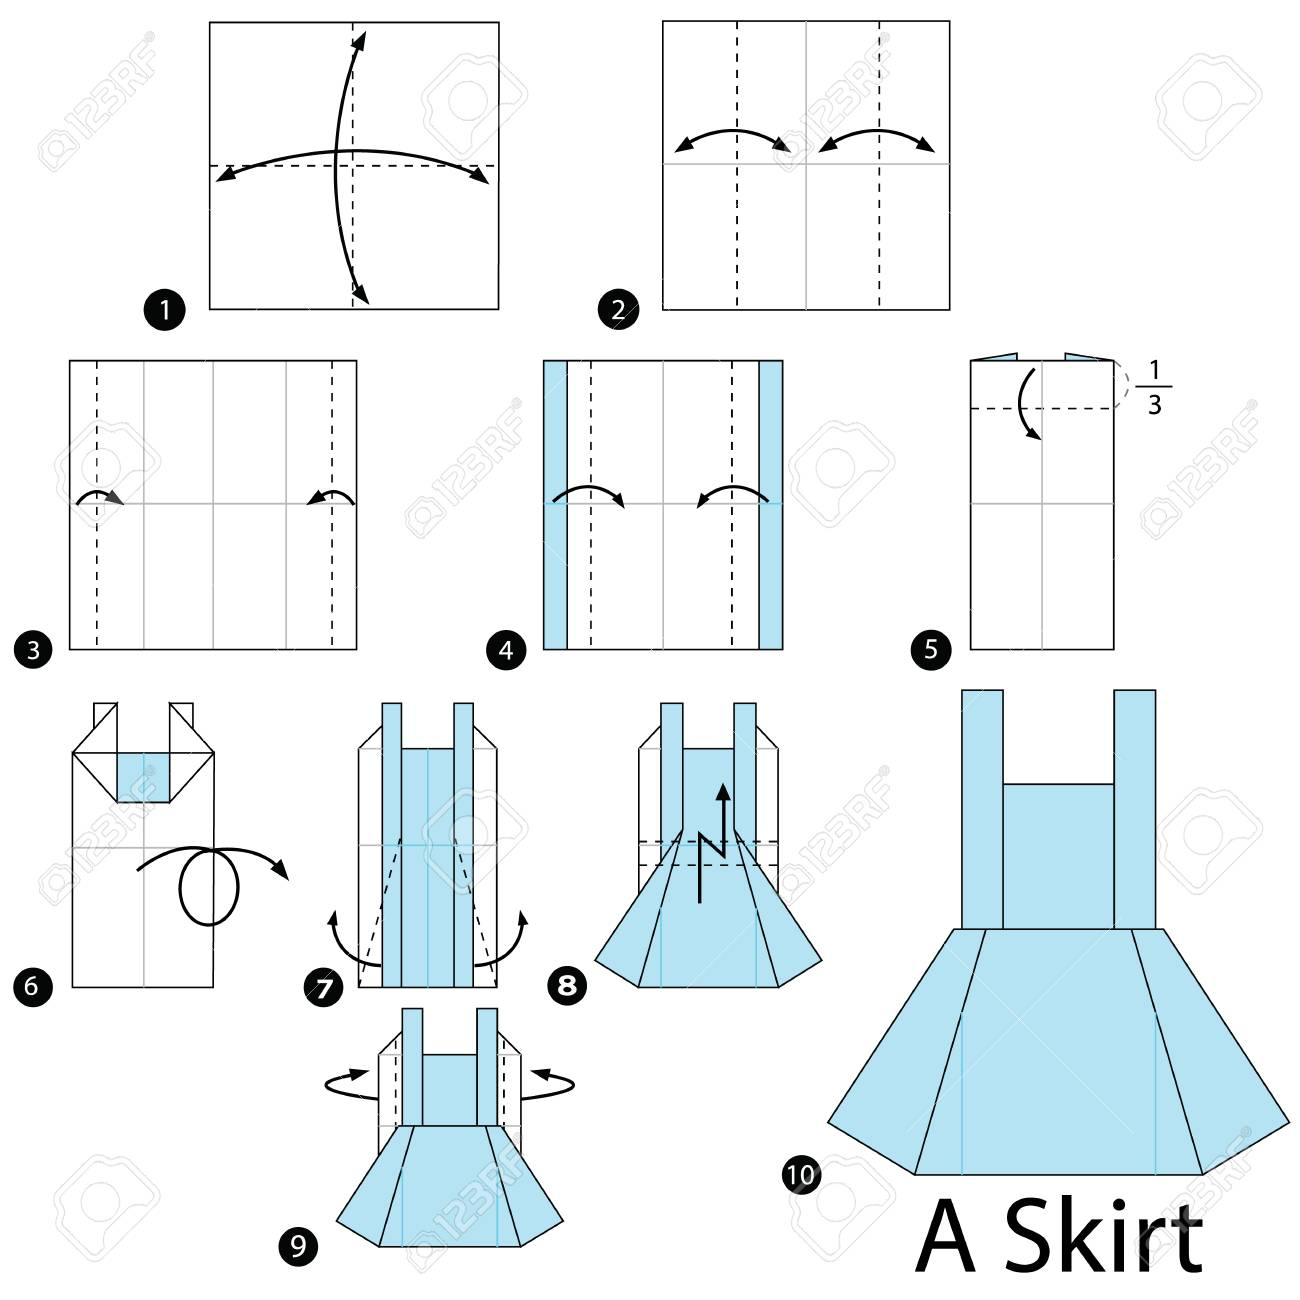 Origami skirt pattern from the sewing workshop.